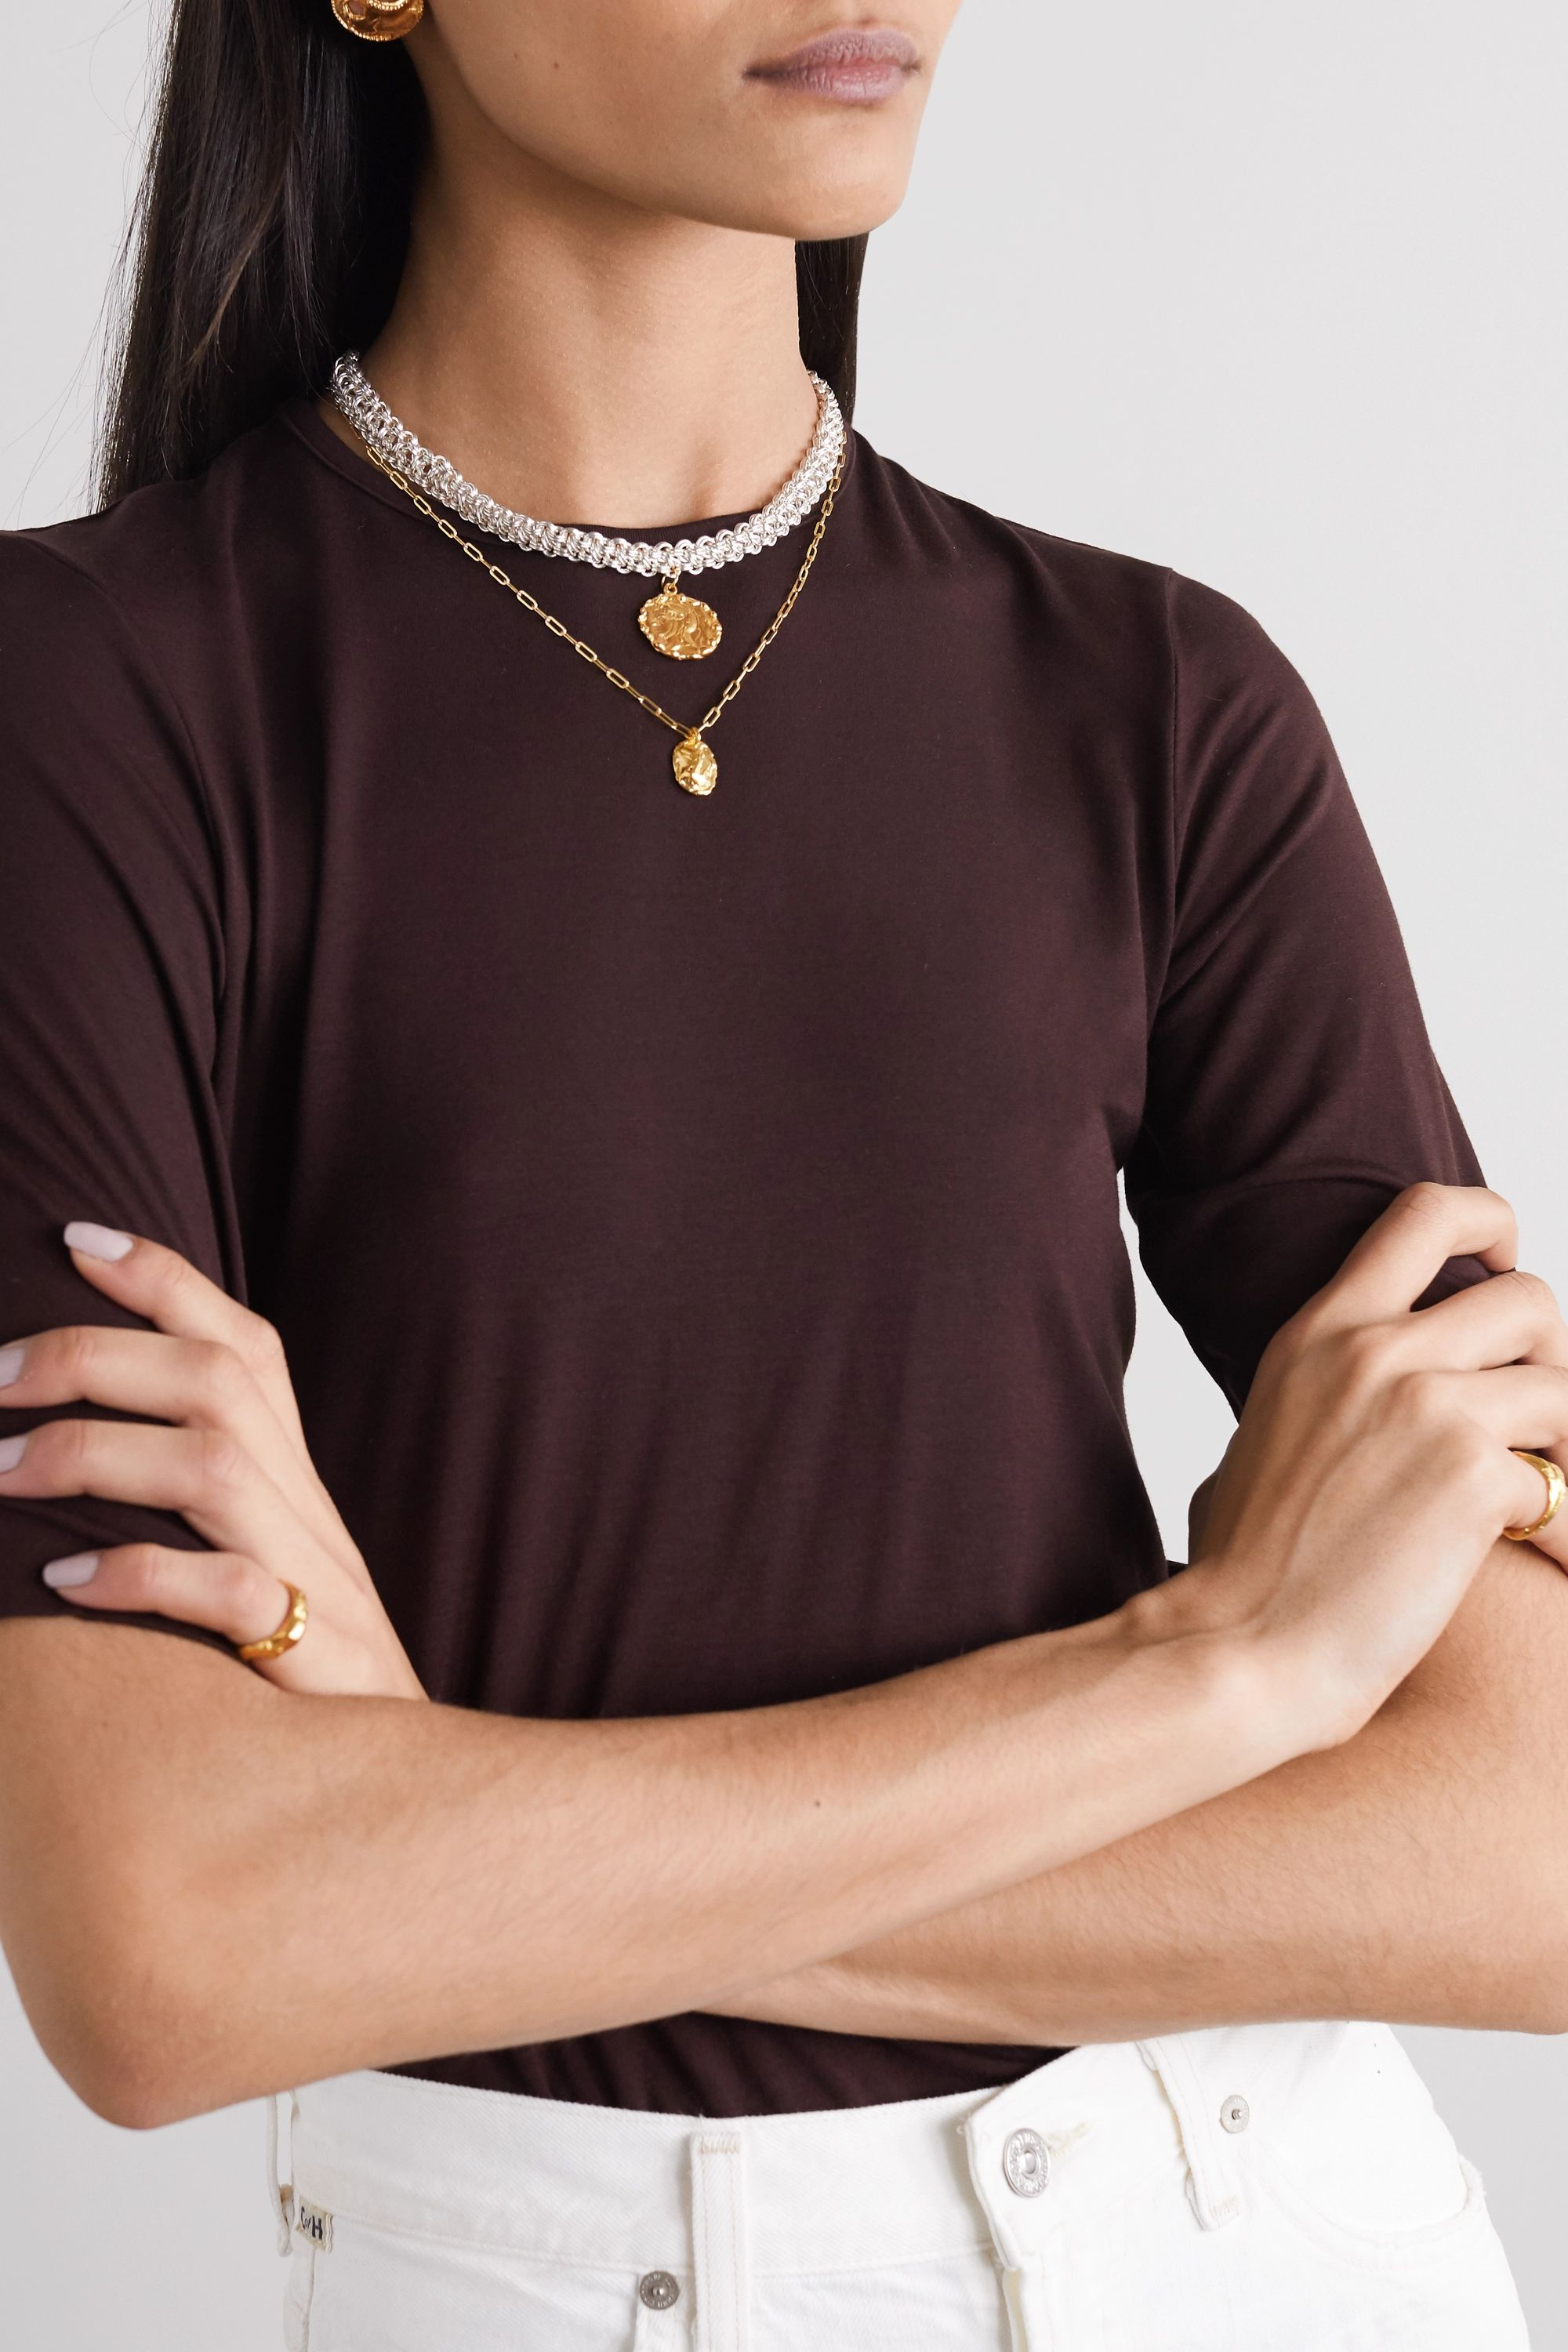 Alighieri The Woven Tapestry silver and gold-plated necklace